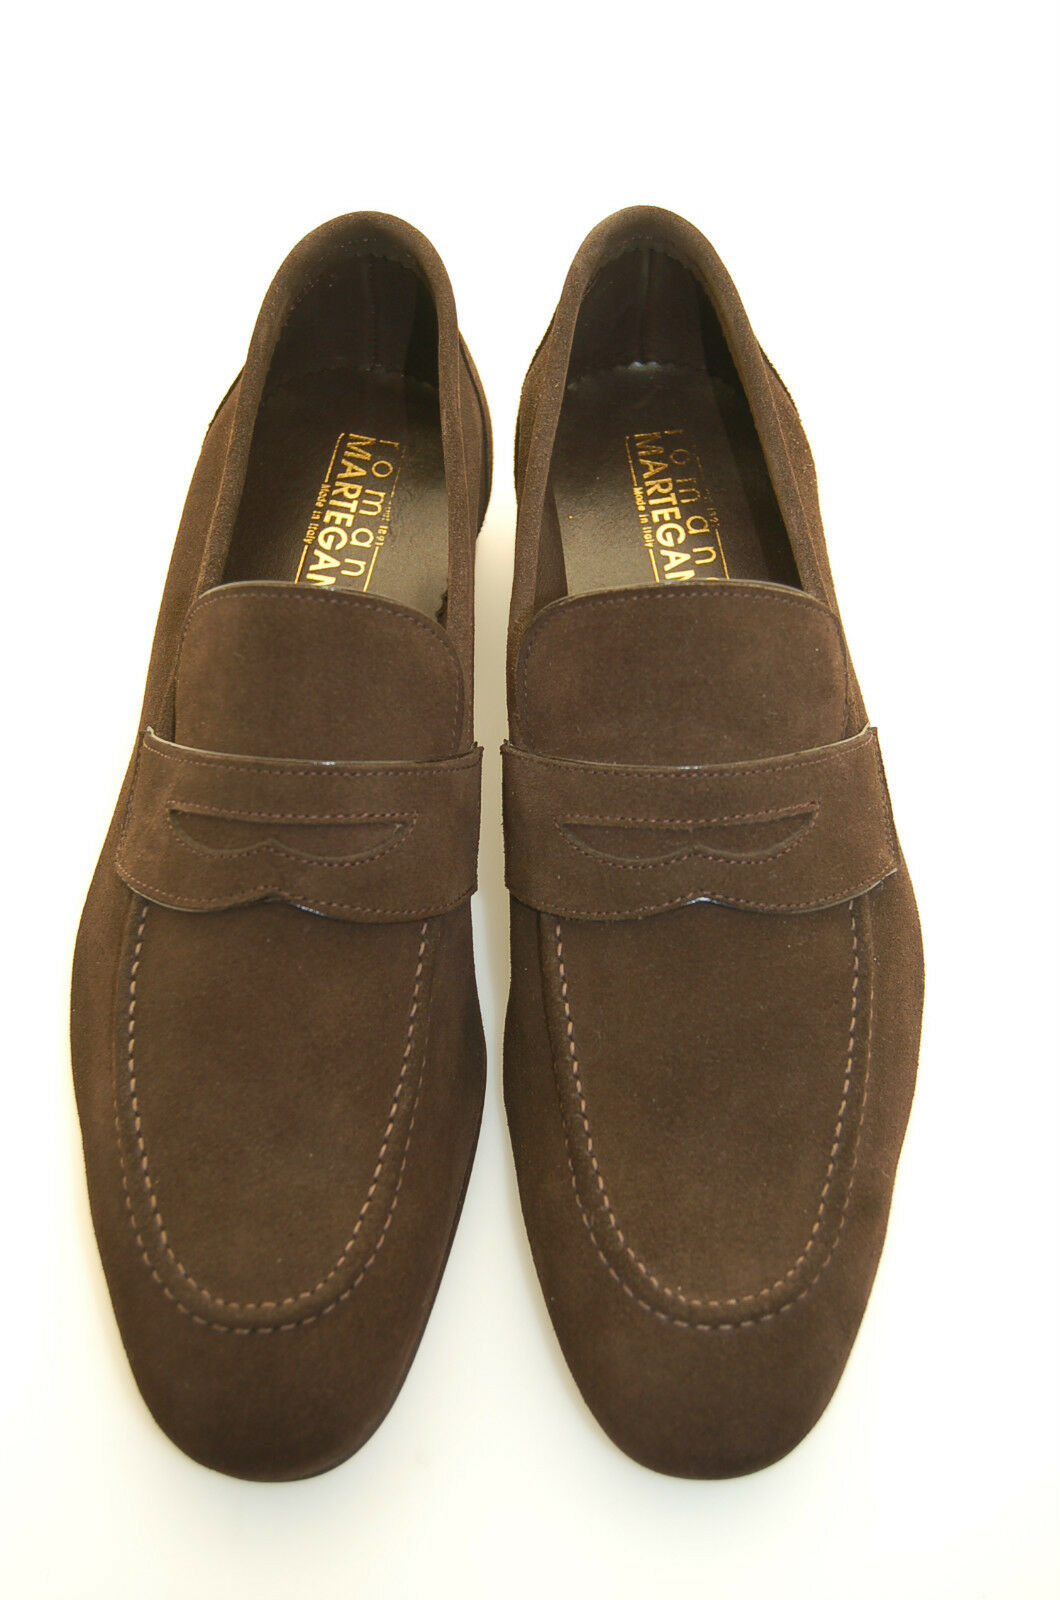 MAN - PENNY LOAFER - HEAD BROWN SUEDE - SINGLE LTH SOLE - BLAKE CONSTRUCTION